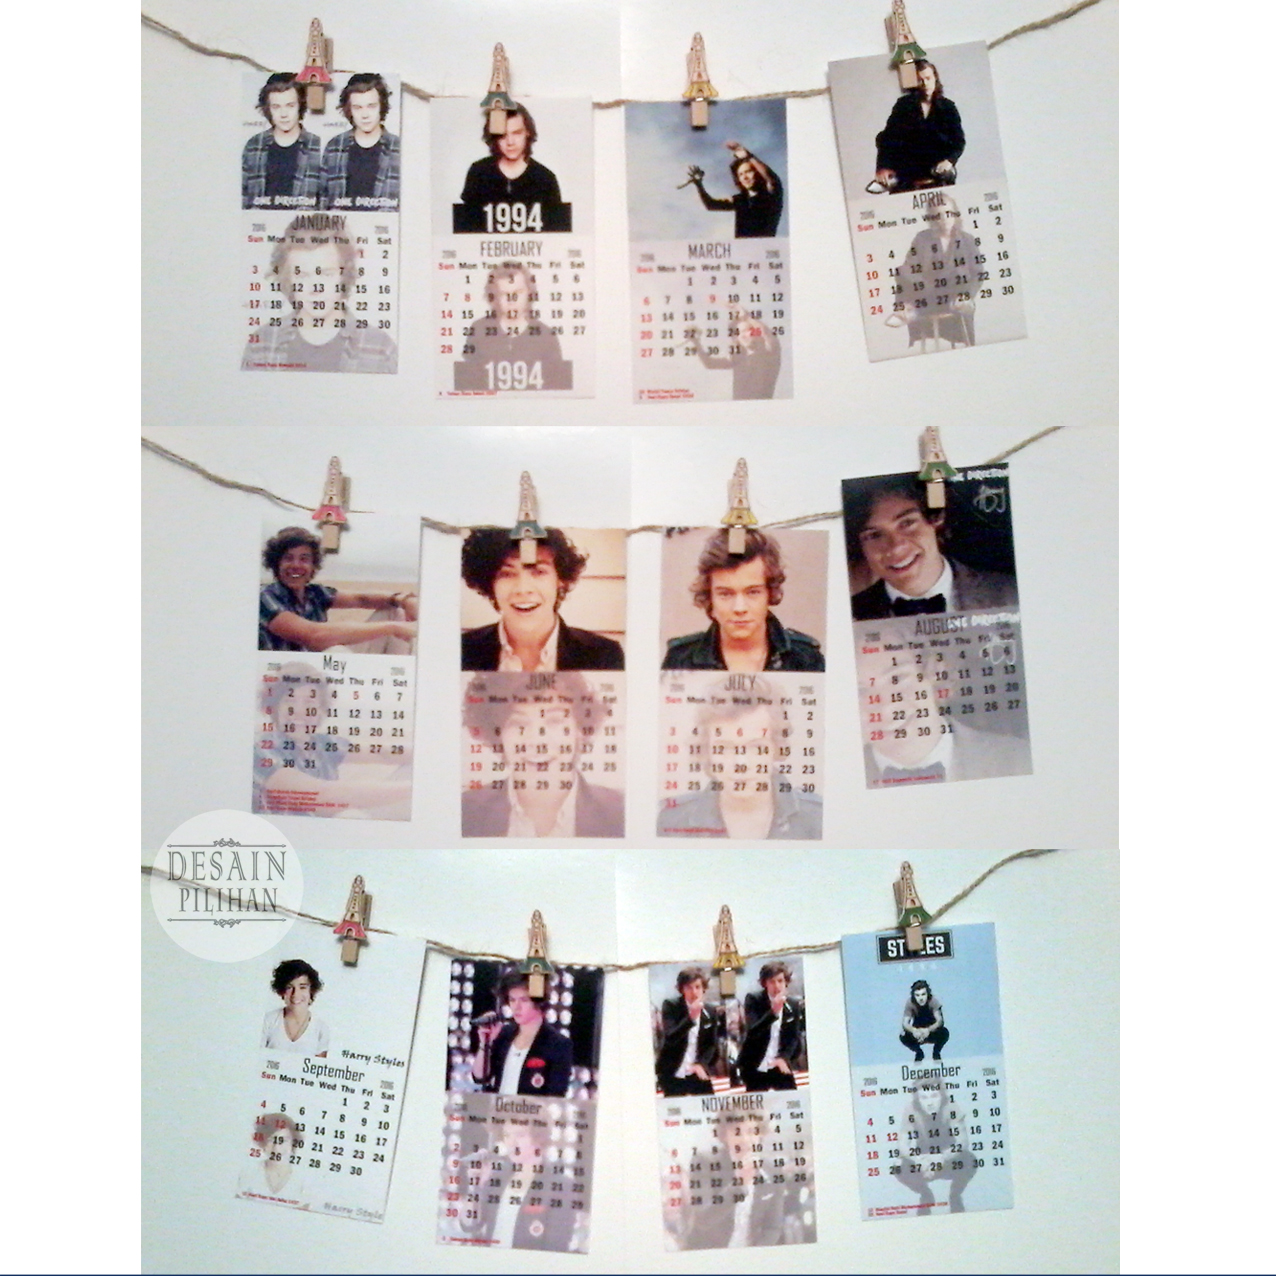 JUAL KALENDER POSTER MINI, KALENDER POSTER MINI CUSTOM HARRY STYLE ONE DIRECTION MURAH